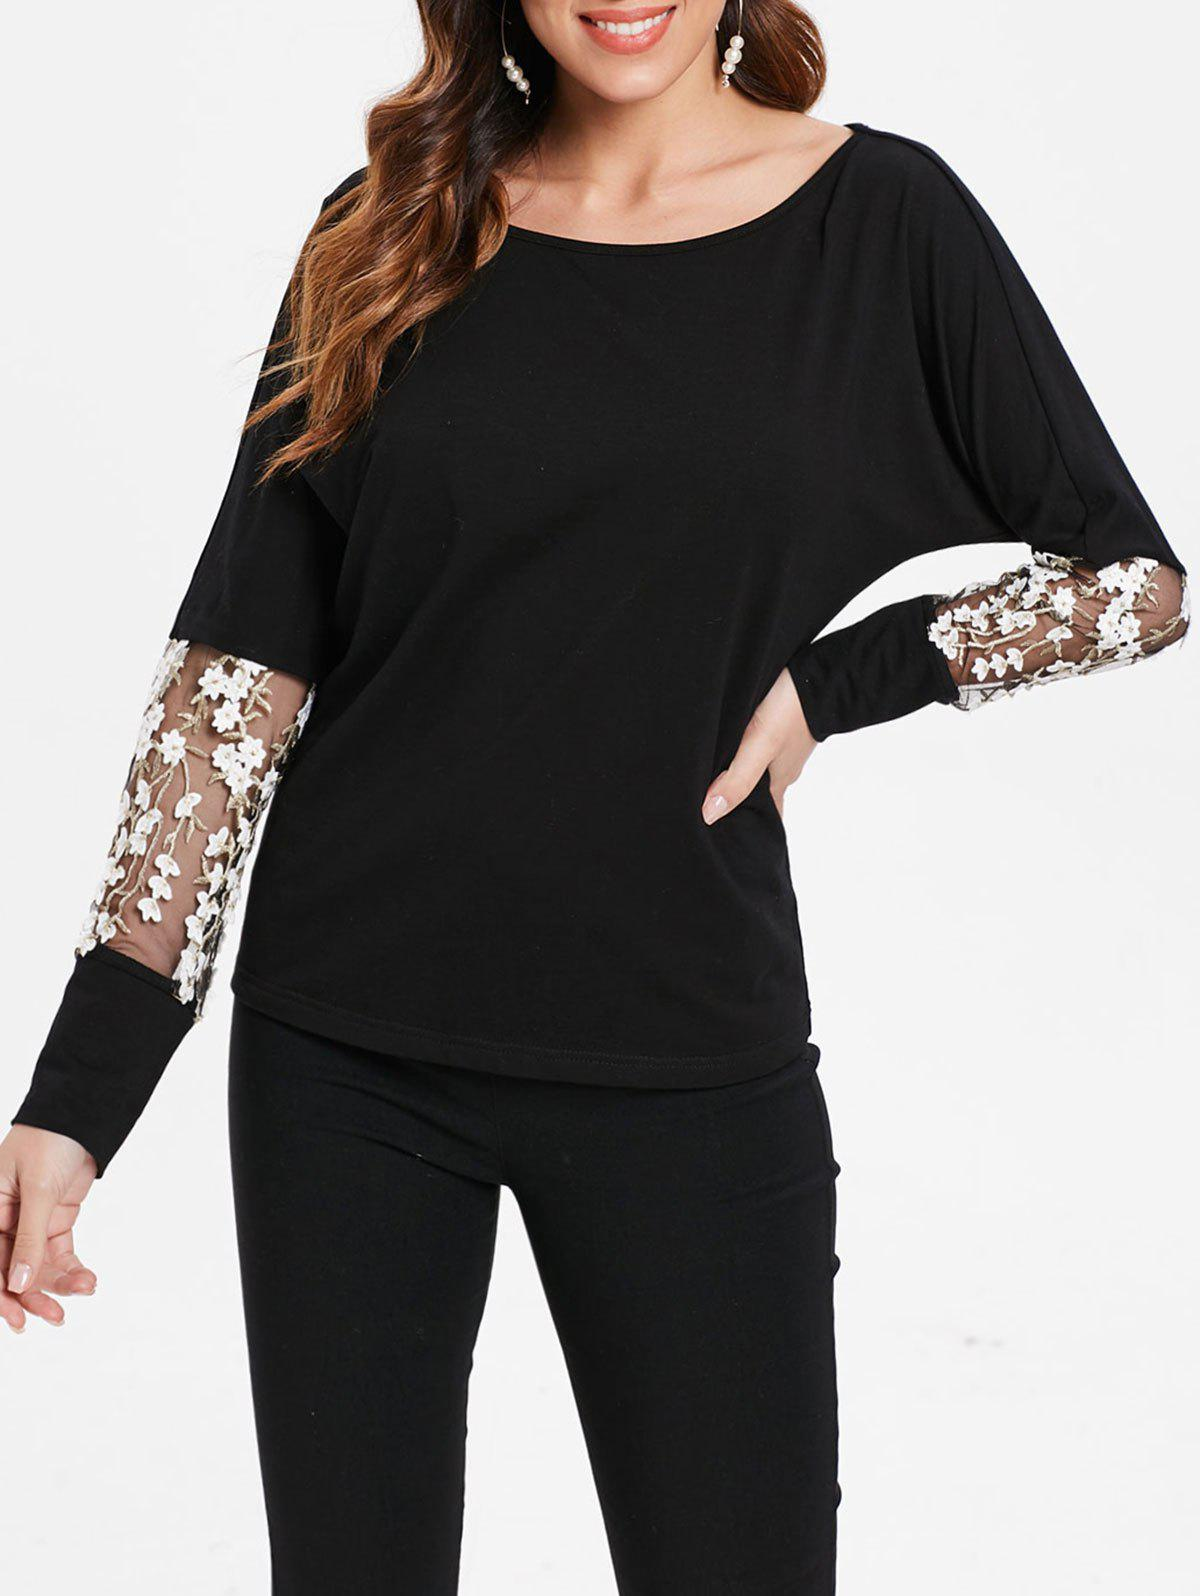 New Floral Embroidery Insert Full Sleeve T-shirt